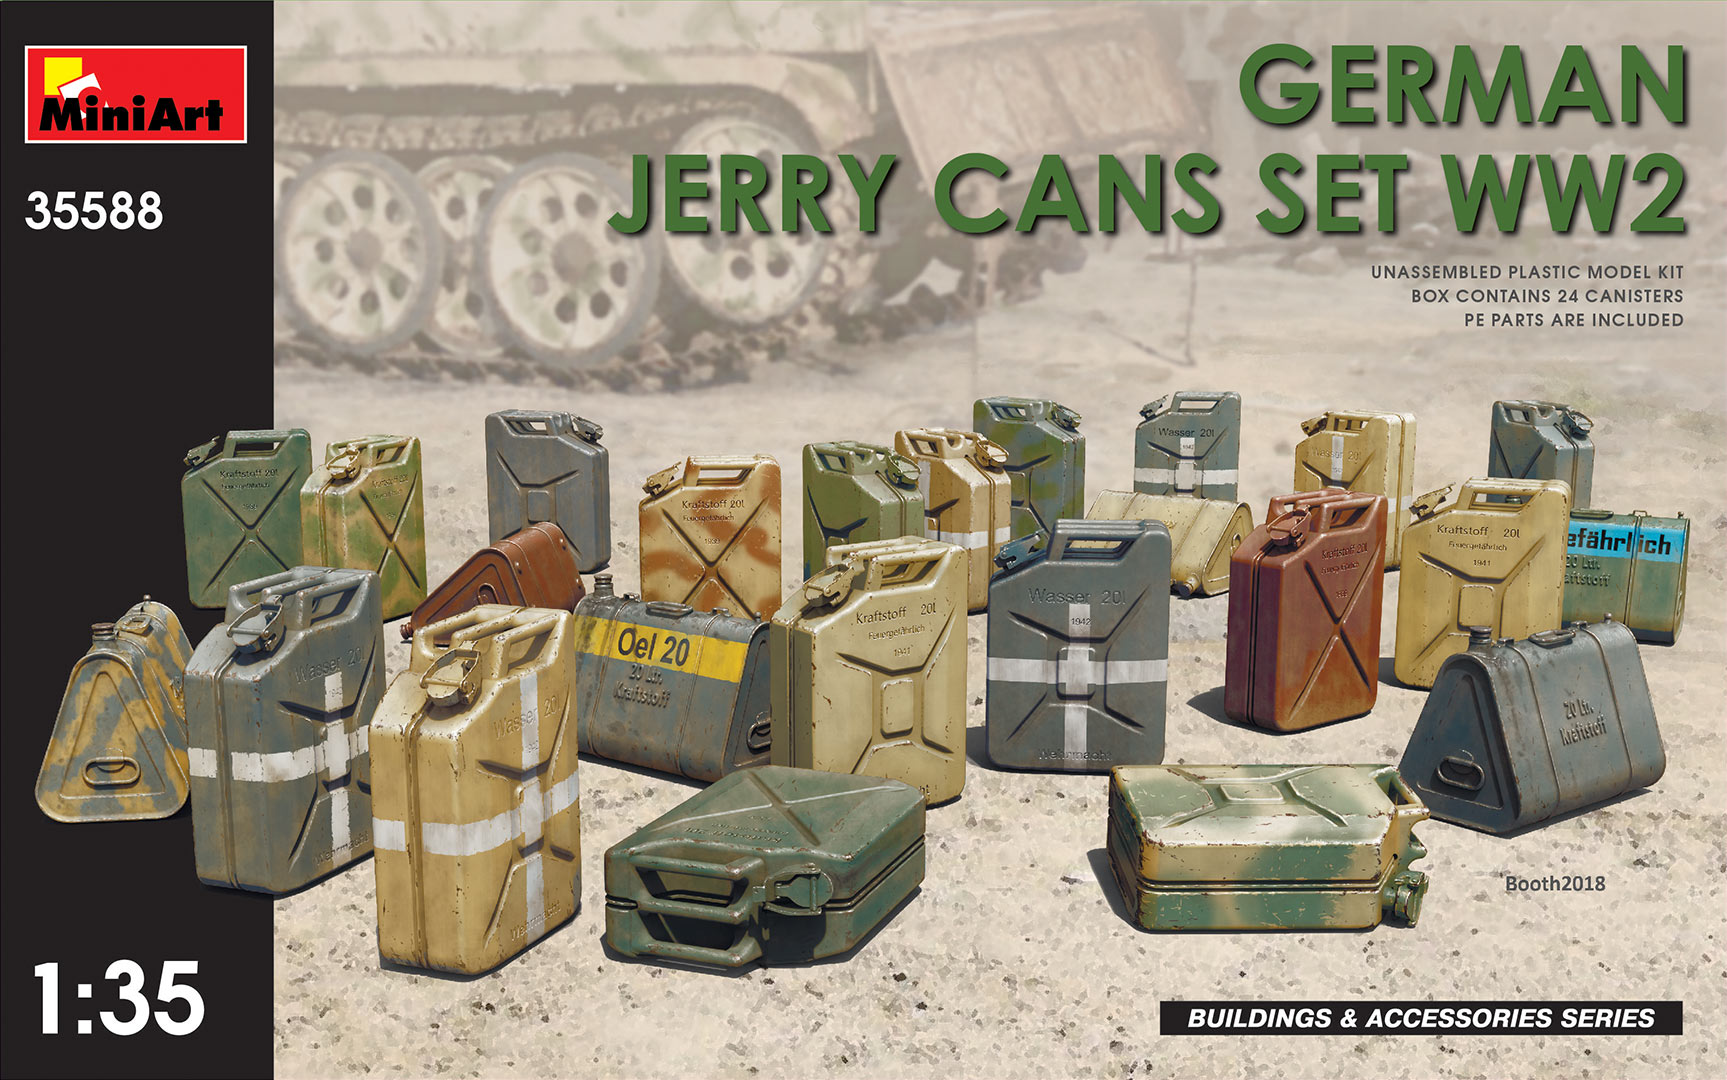 1/35 GERMAN JERRY CANS SET WW2 35588